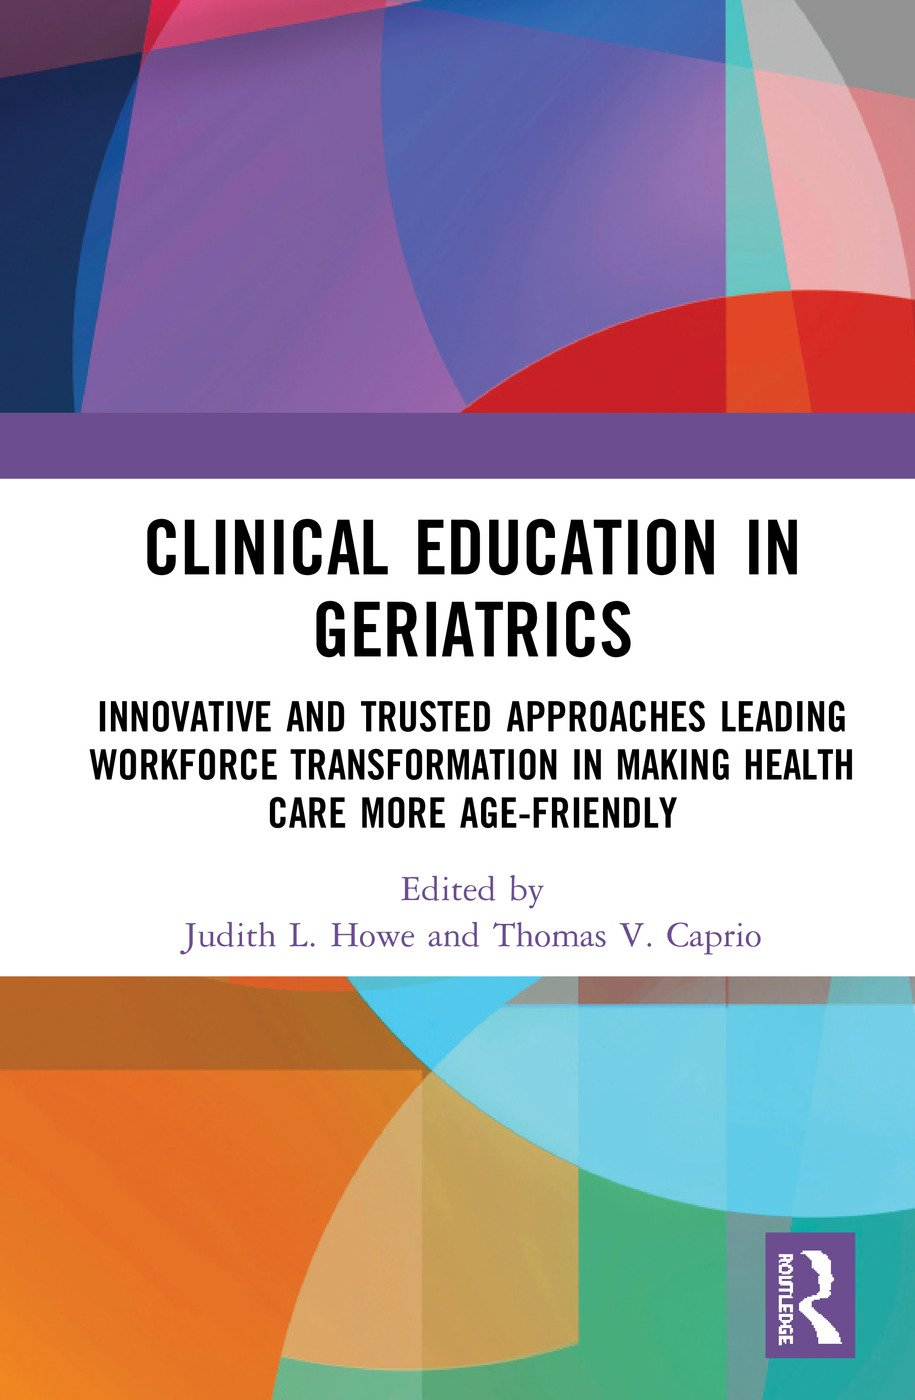 Clinical Education in Geriatrics: Innovative and Trusted Approaches Leading Workforce Transformation in Making Health Care More Age-Friendly book cover